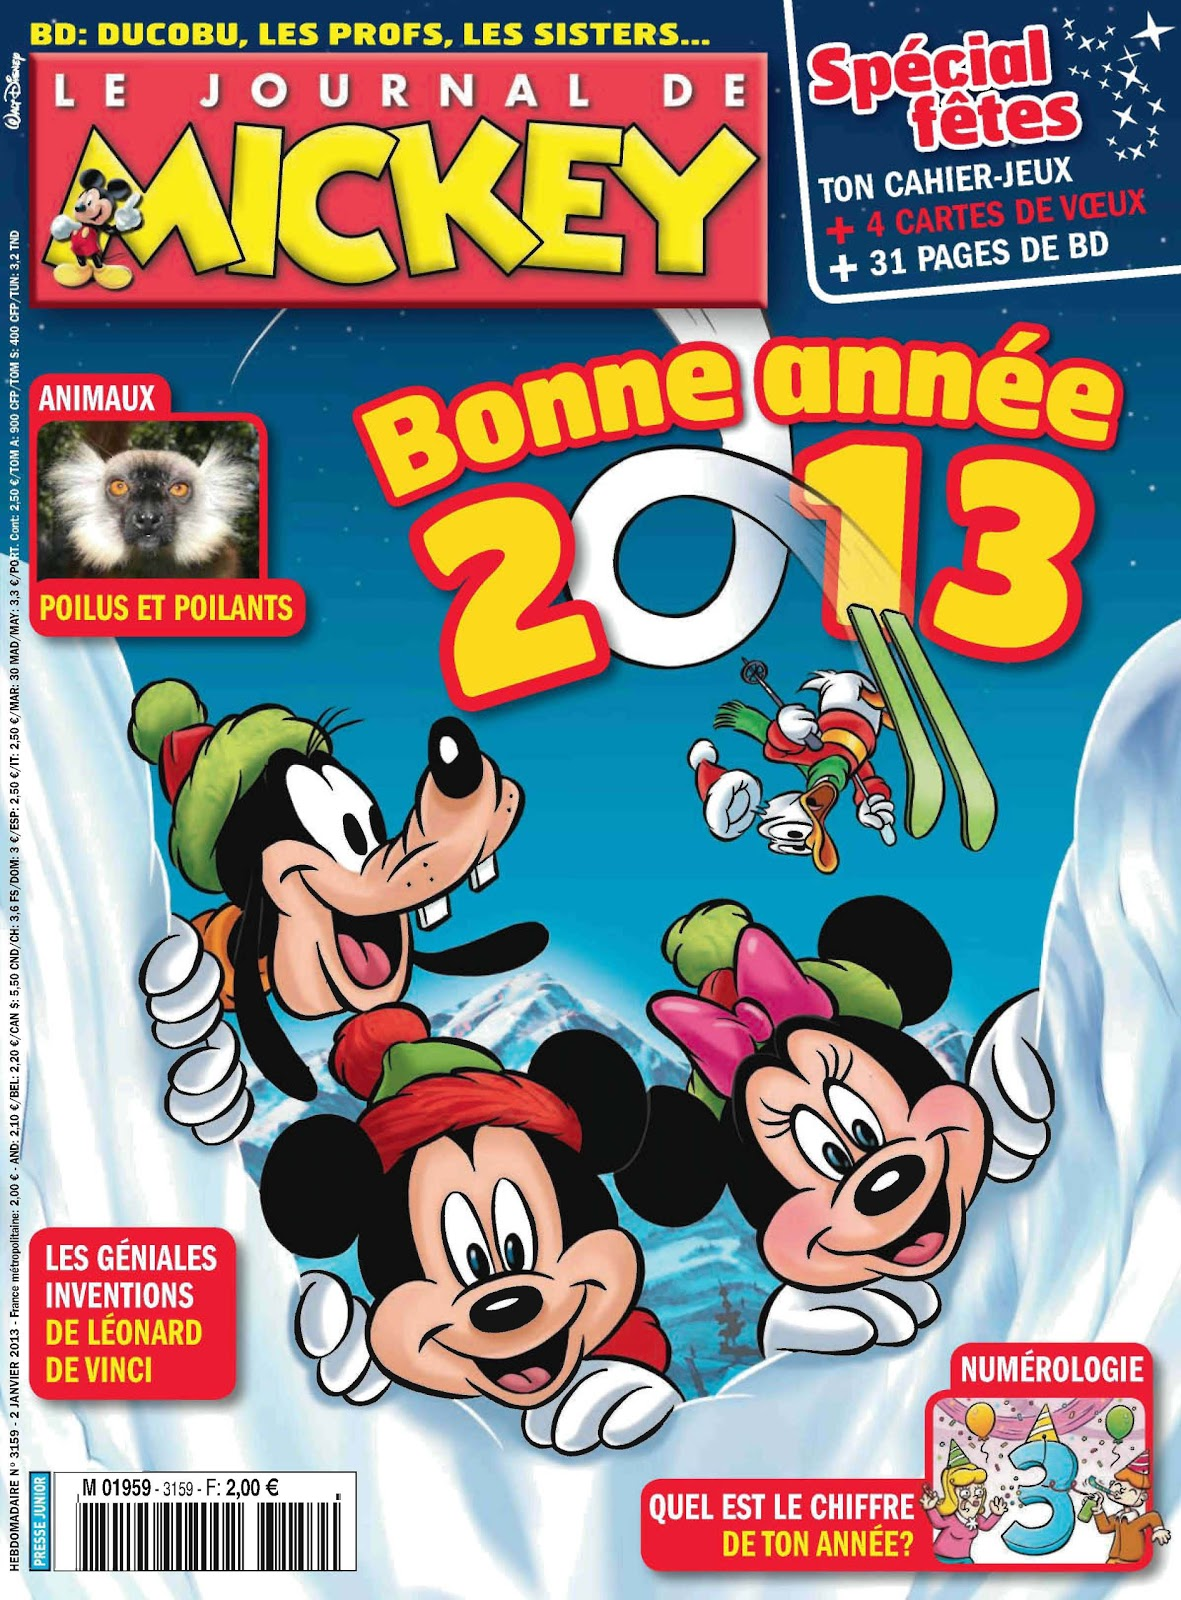 le journal de mickey journal de mickey 3159. Black Bedroom Furniture Sets. Home Design Ideas